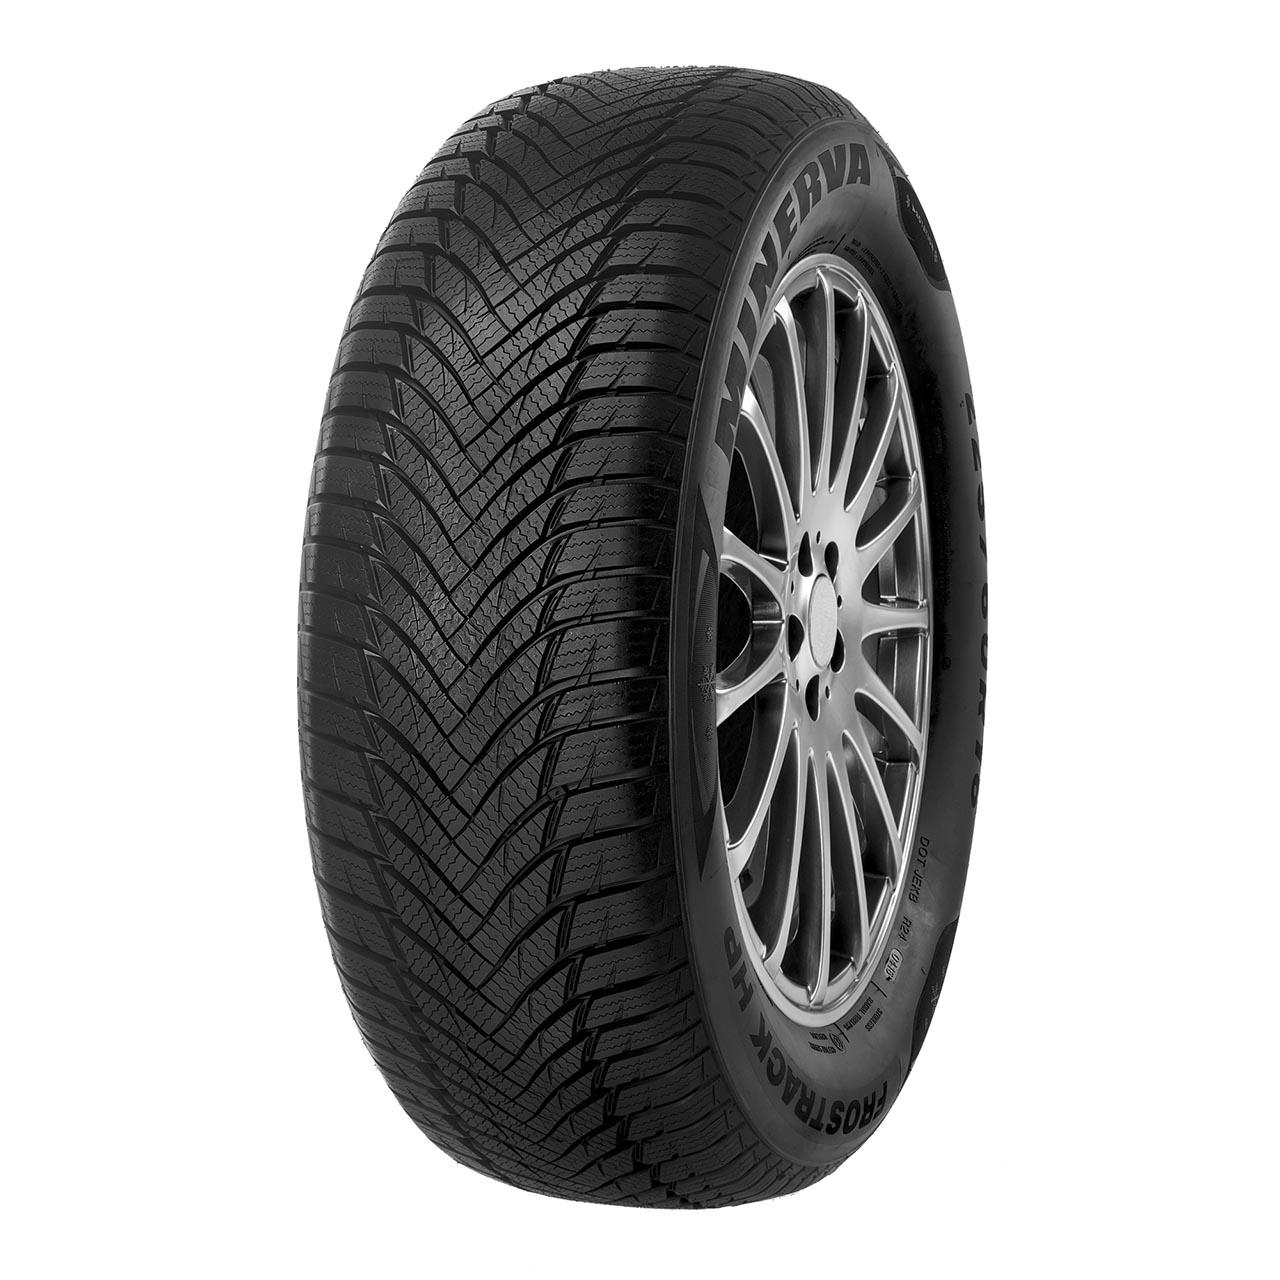 Minerva Frostrack UHP 205/55R16 91H